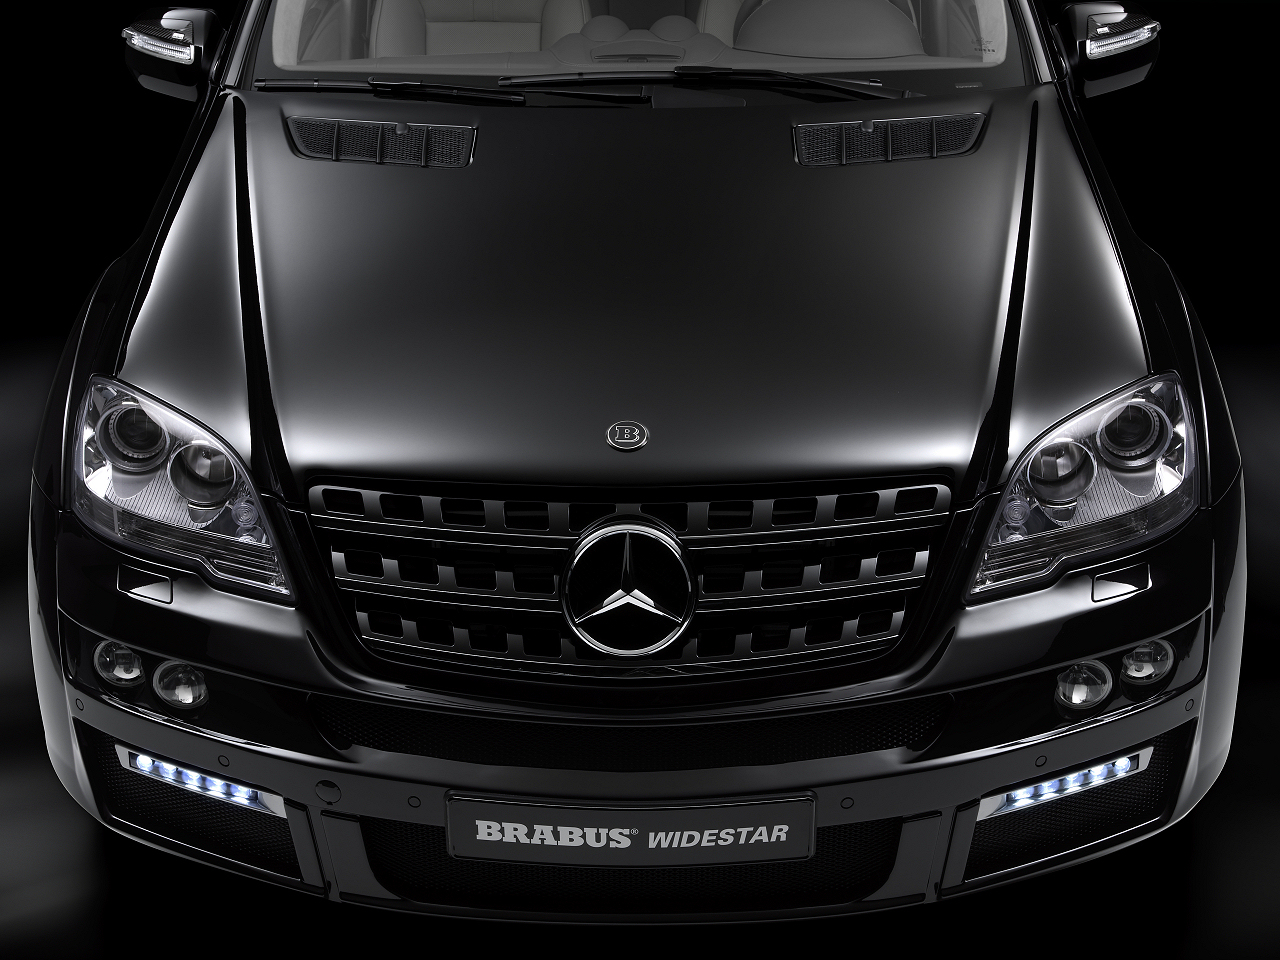 Mercedes M-class Widestar by Brabus